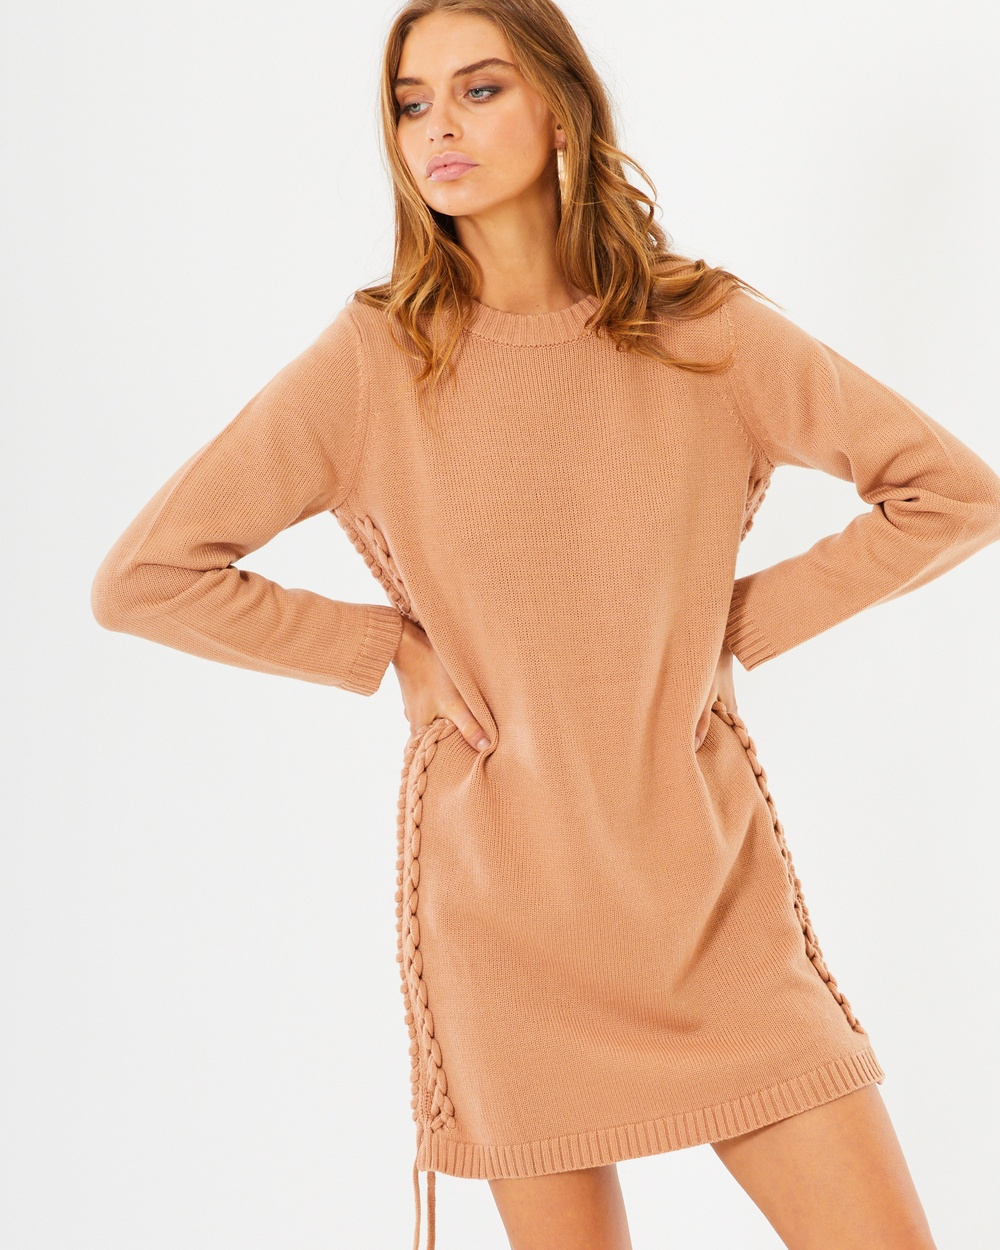 Photo of Tussah Tan Lula Knit Dress - beautiful dress from Tussah online